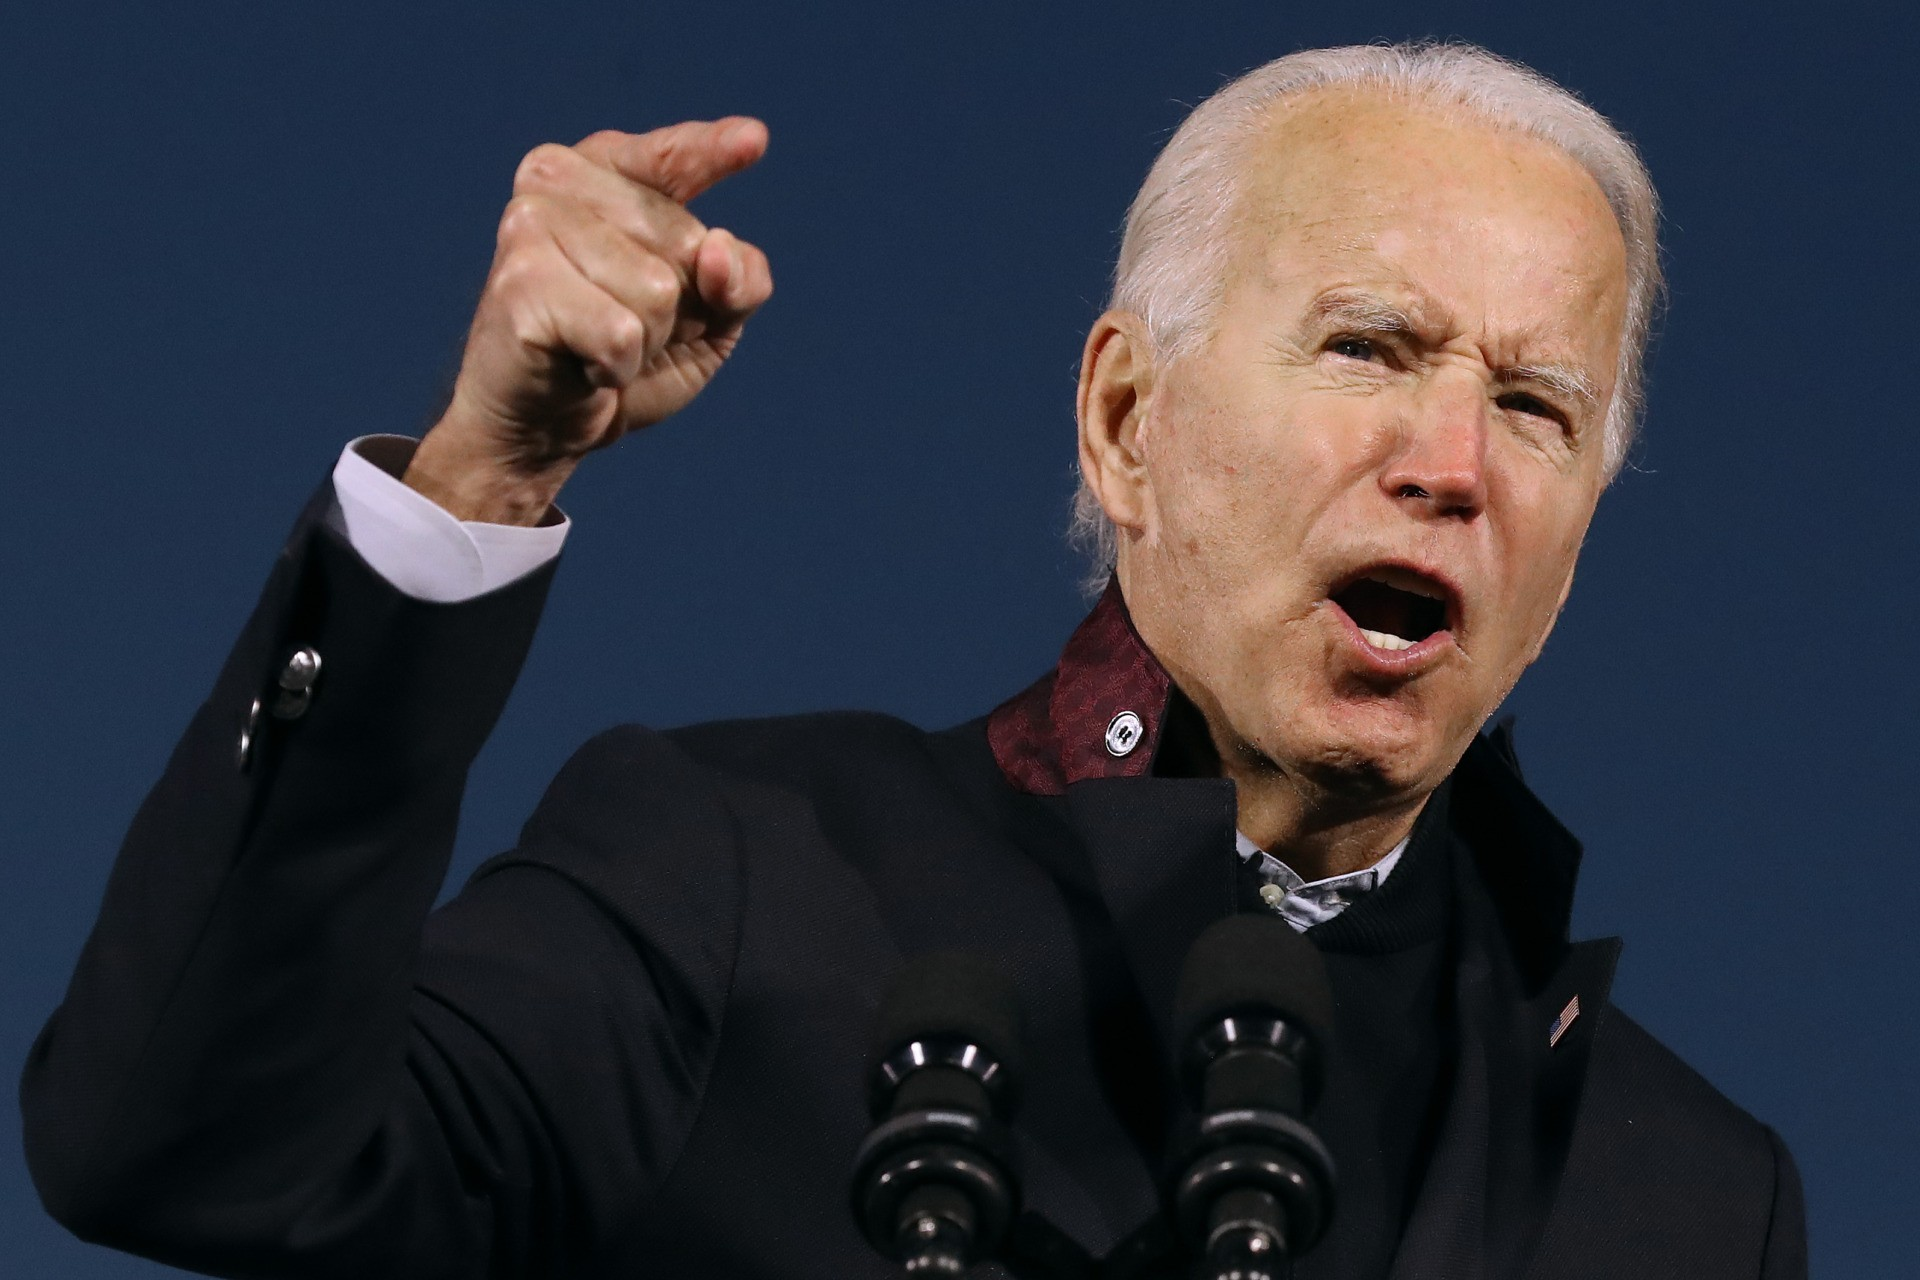 NOVI, MICHIGAN - OCTOBER 16: Democratic presidential nominee Joe Biden addresses a drive-in campaign rally at the Michigan State Fairgrounds October 16, 2020 in Novi, Michigan. With 18 days until the election, Biden is campaigning in Michigan, a state President Donald Trump won in 2016 by less than 11,000 votes, the narrowest margin of victory in the state's presidential election history. (Photo by Chip Somodevilla/Getty Images)